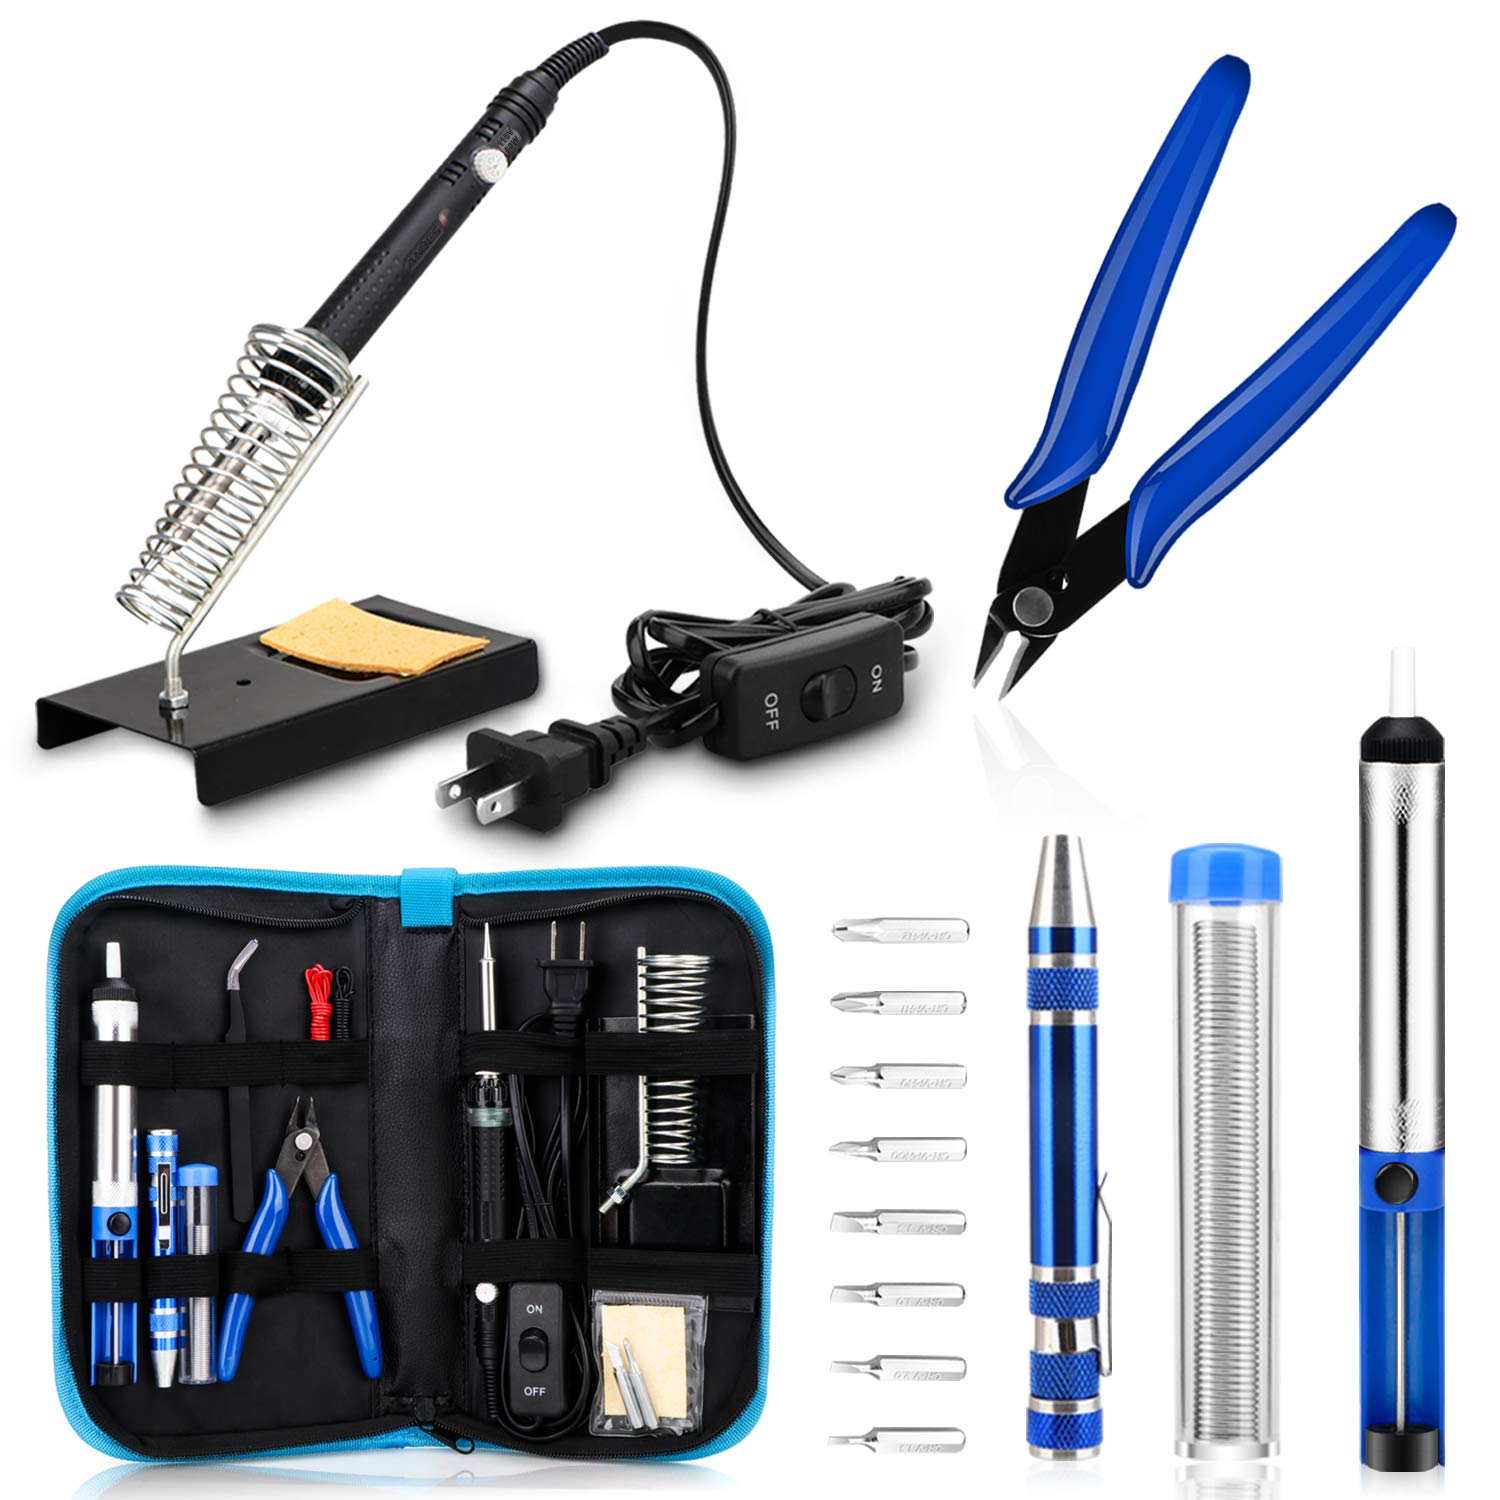 Anbes Soldering Iron Kit, [Upgraded] 60W Adjustable Temperature Welding Tool with ON-